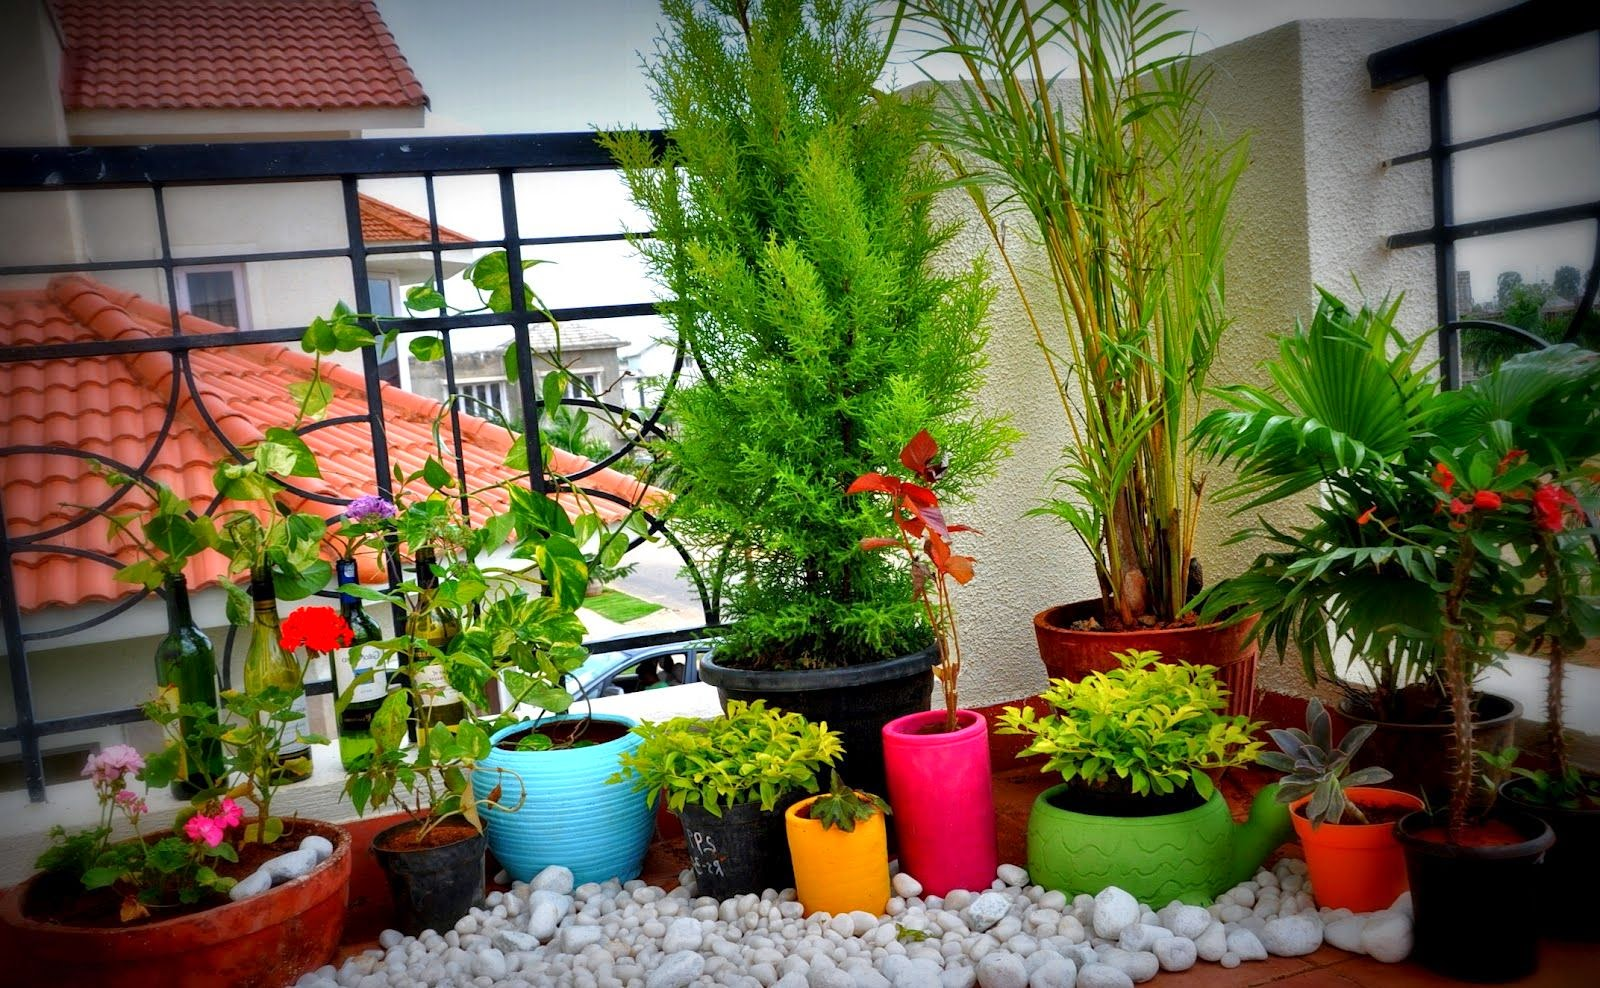 Home garden design for small spaces for Balcony garden design ideas